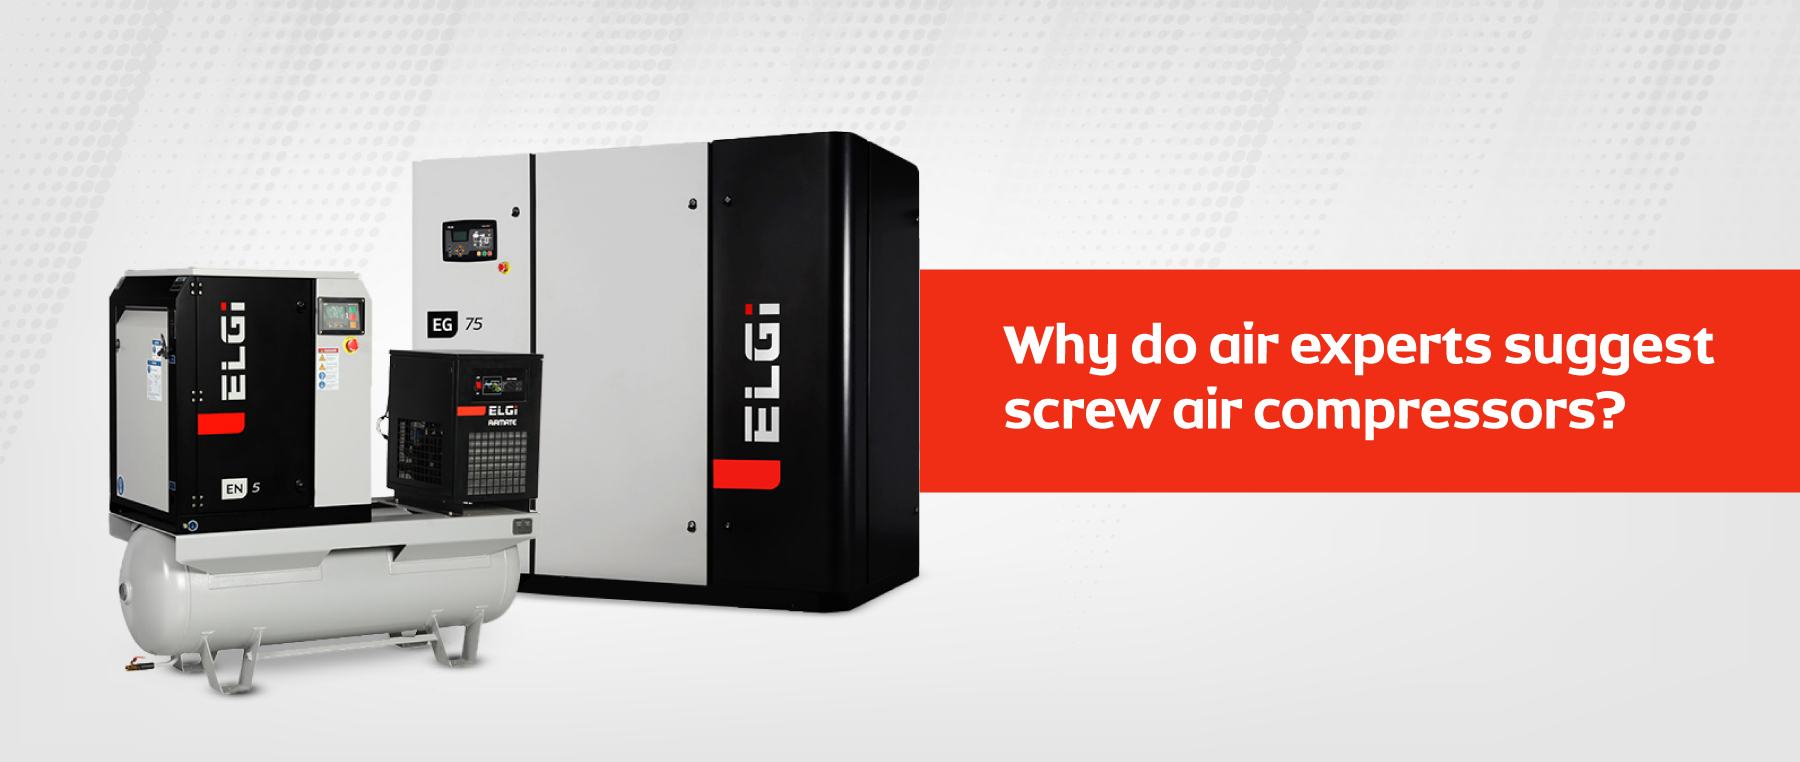 Why do air experts suggest screw air compressors?